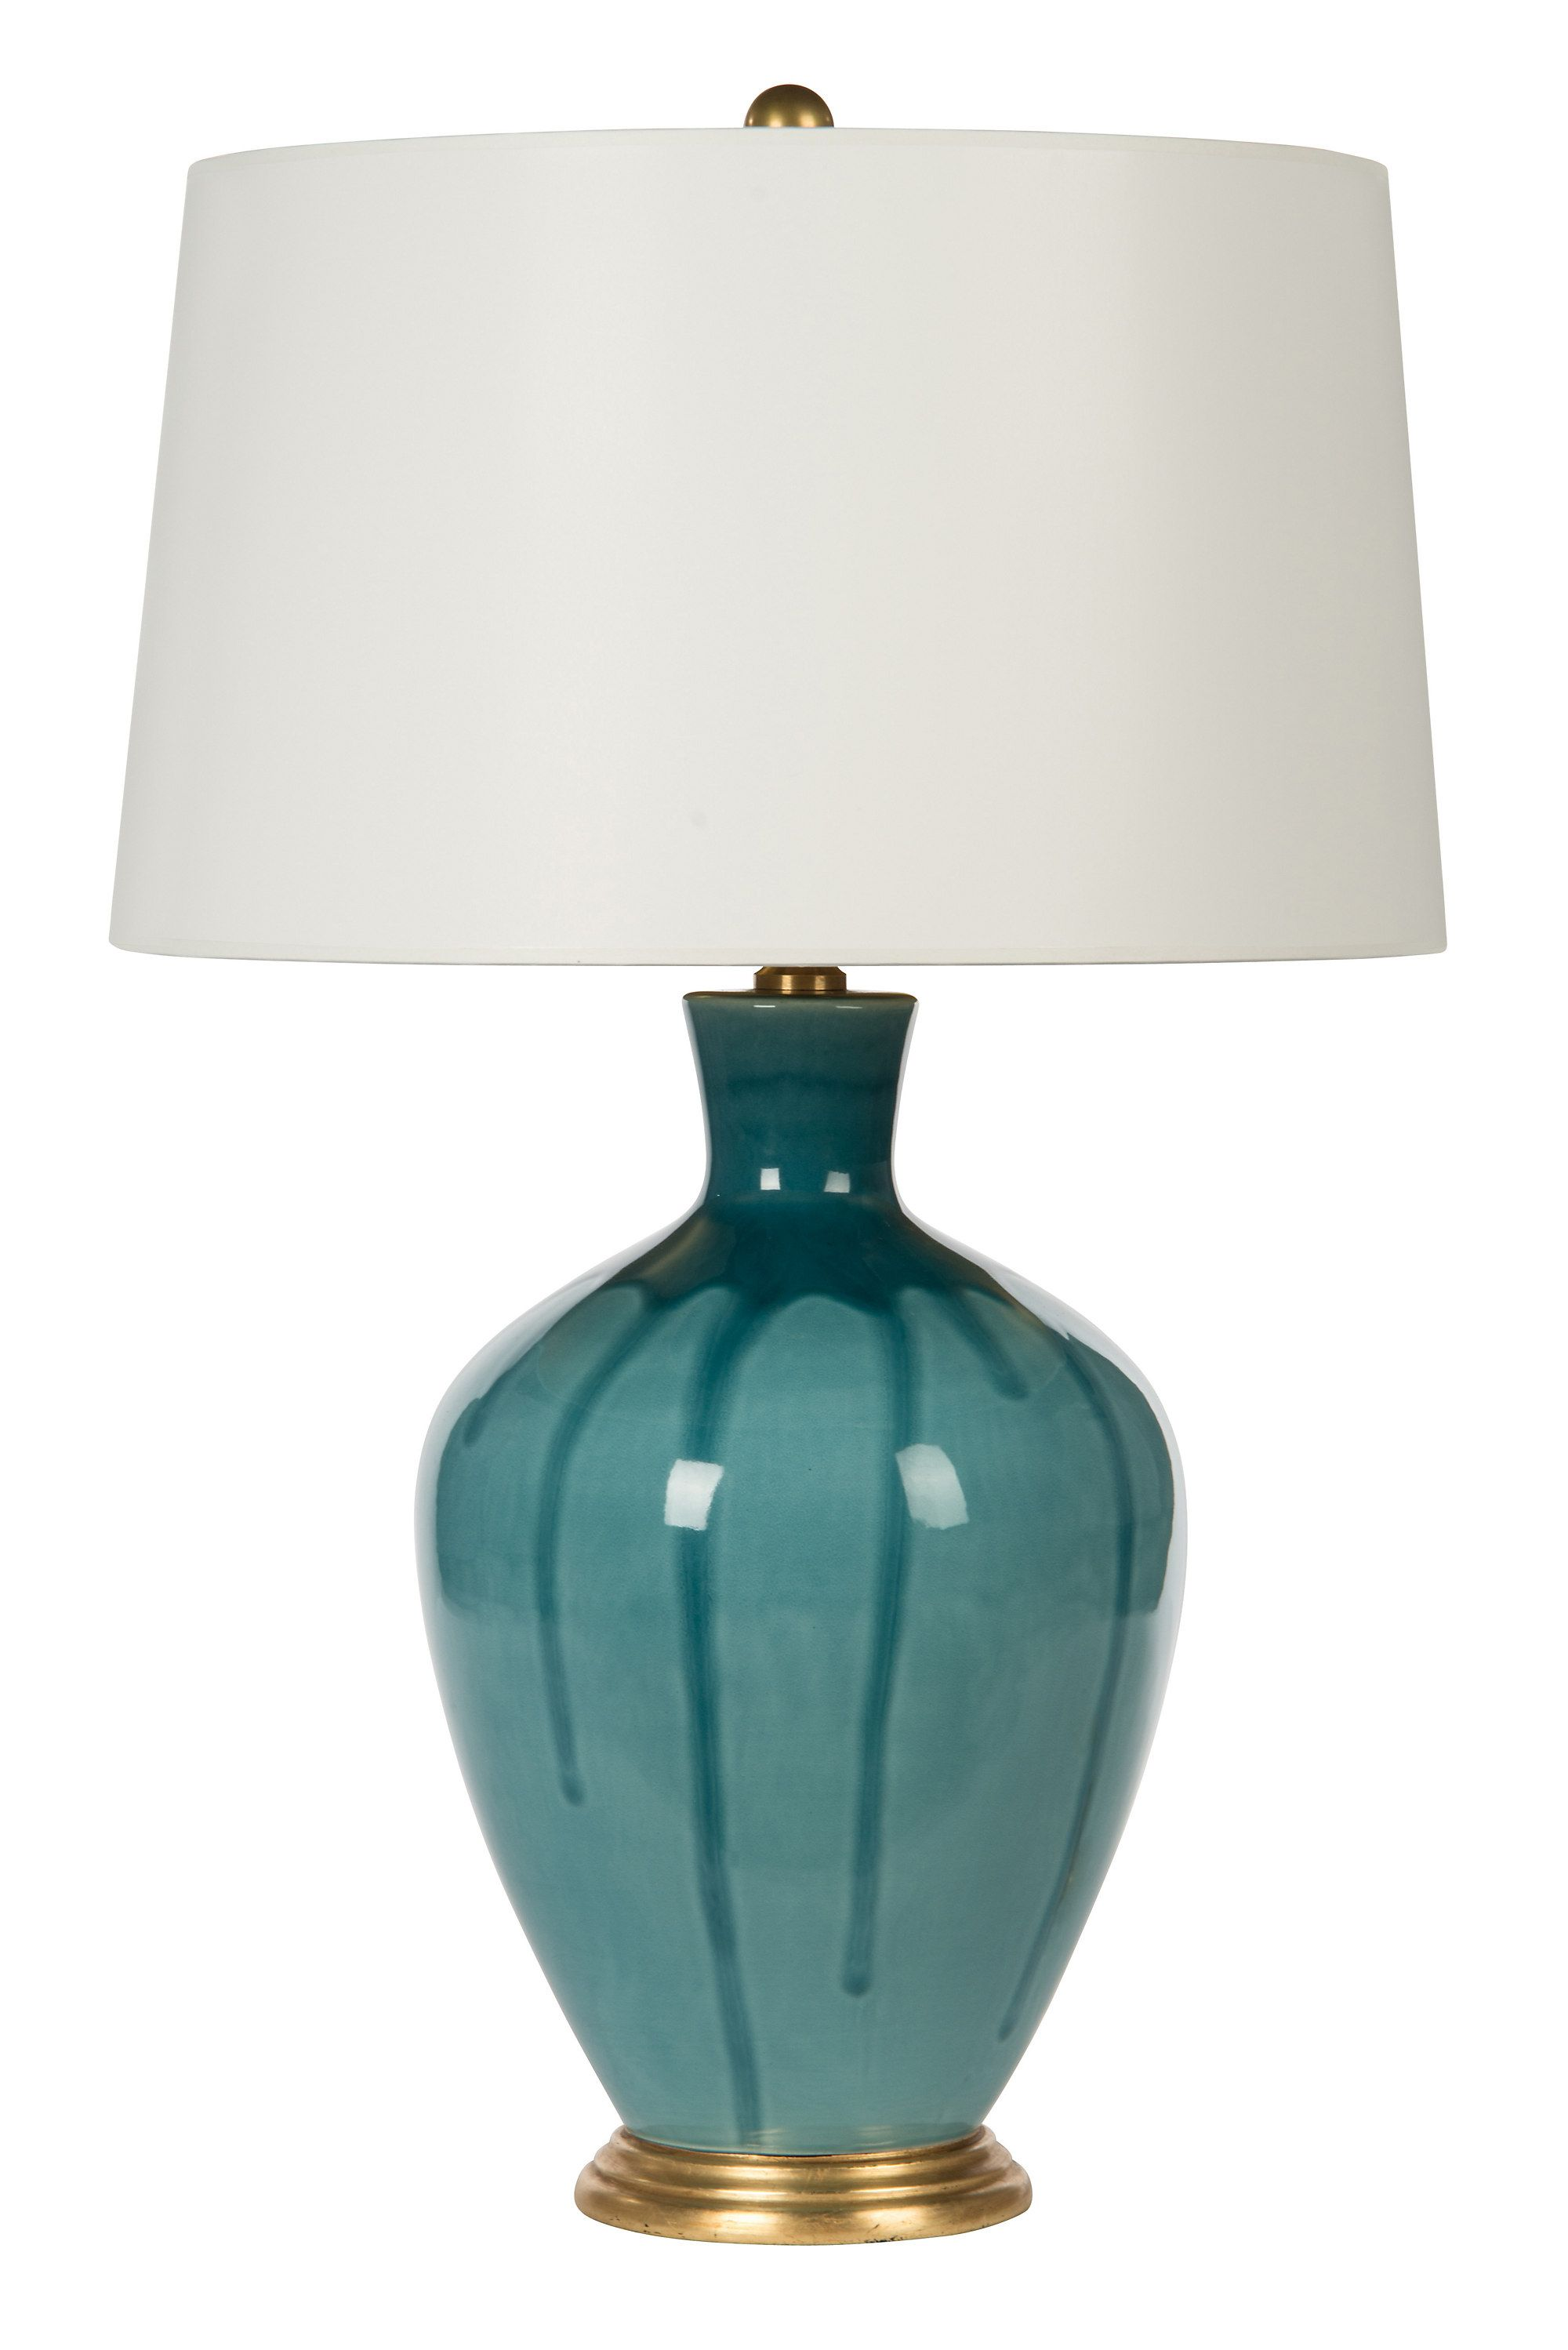 coral cape cfl lamp with table teal lamps coastal luxury hypermallapartments best bulb of